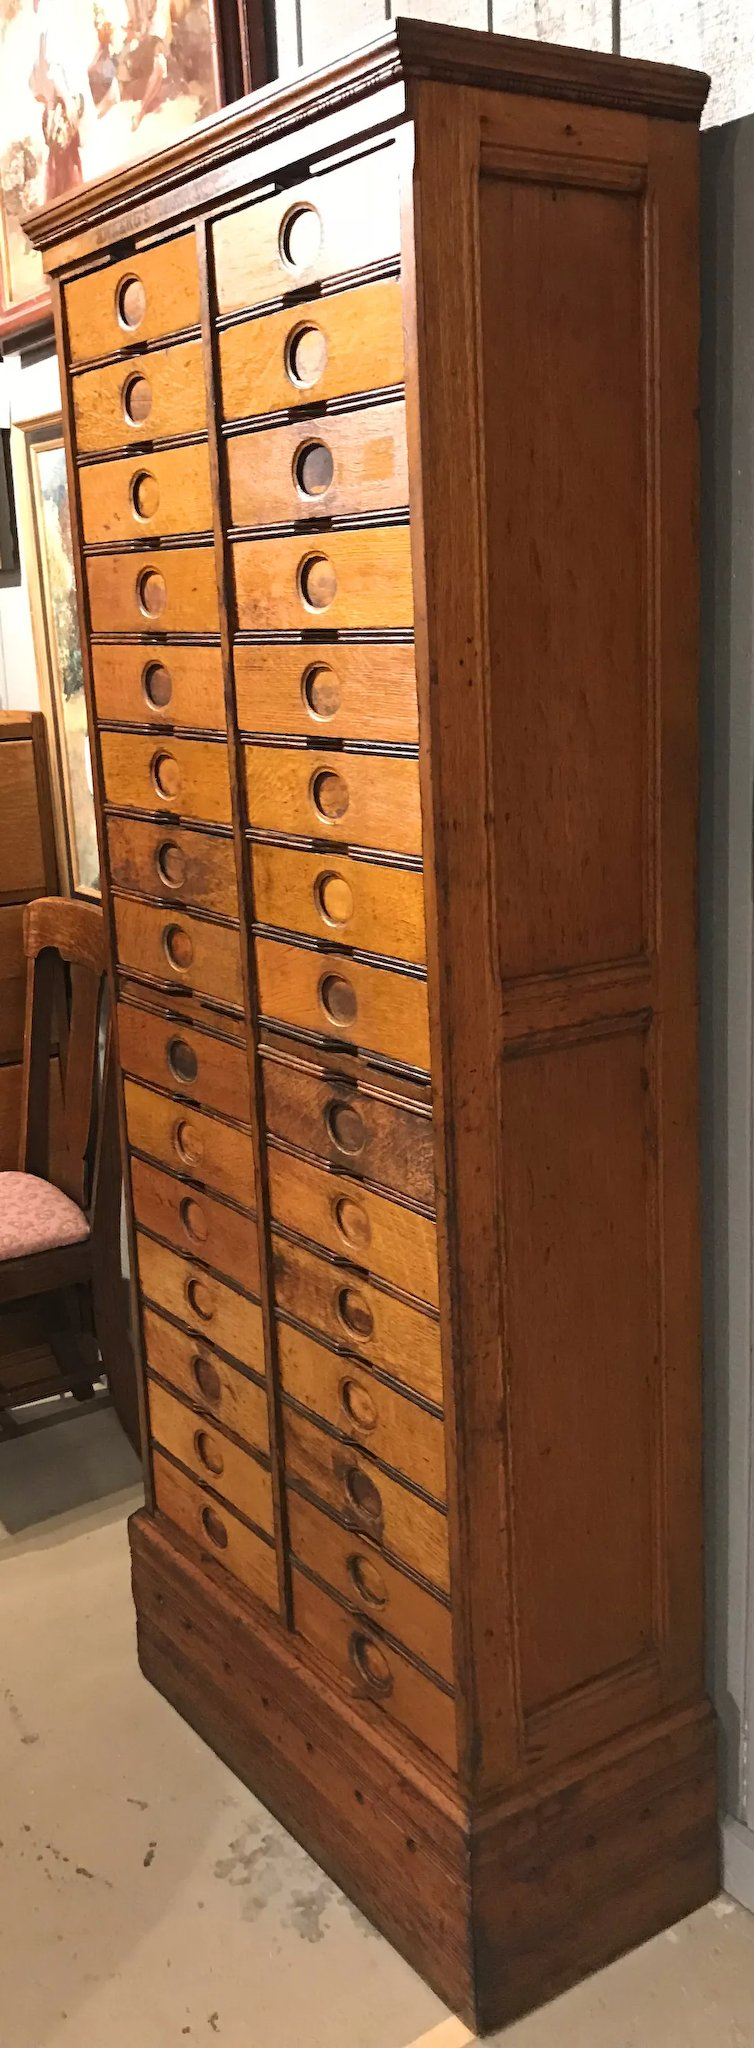 Amberg S Imperial Letter File Multi Drawer Cabinet Circa 1920 New Hampshire Antique Co Op